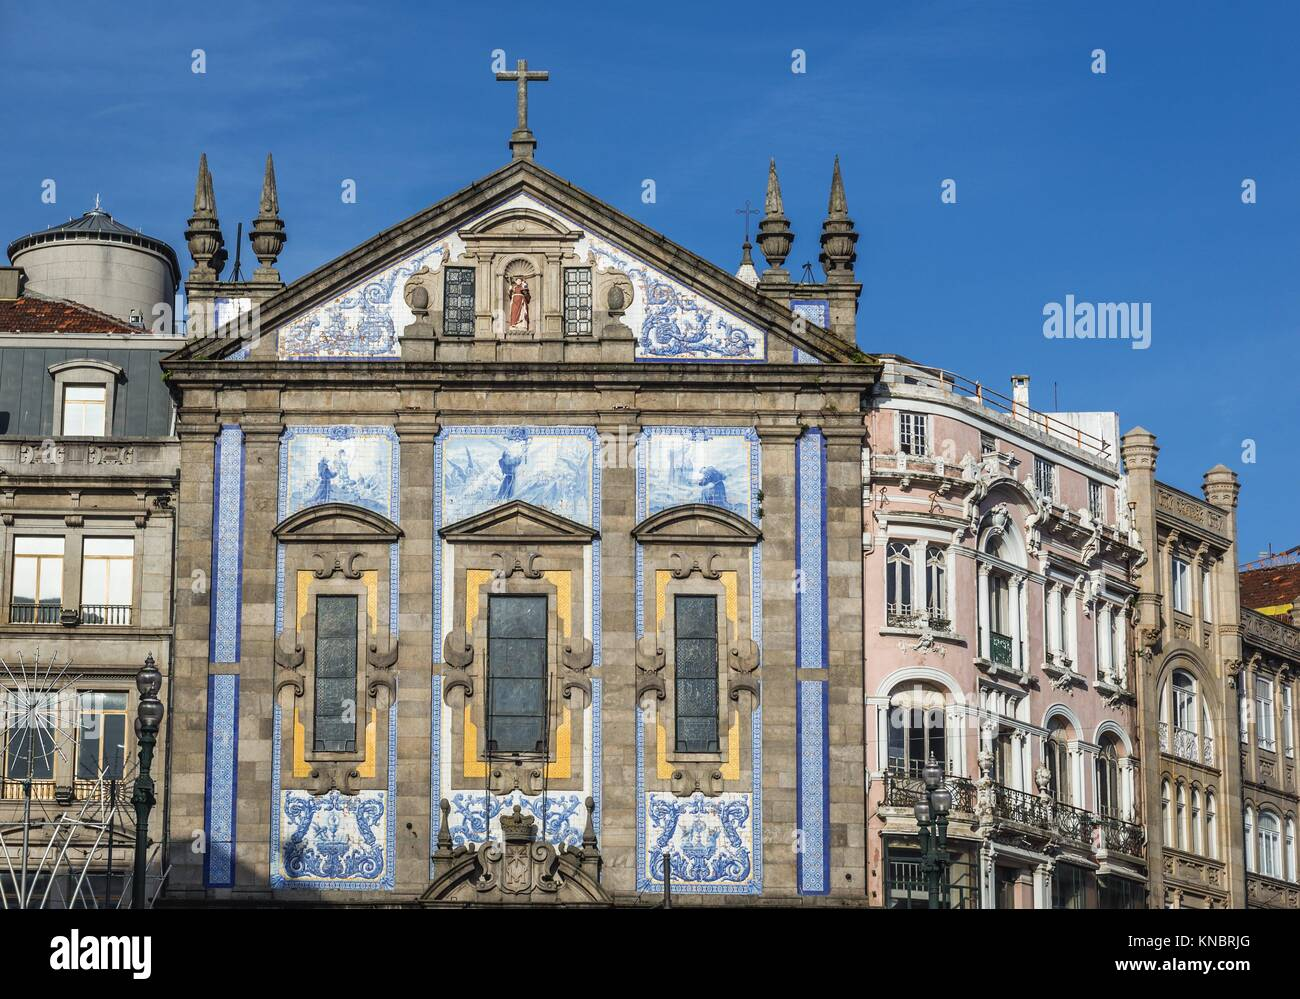 Saint Anthony's Church (also known as Church of the Congregates) in Santo Ildefonso civil parish of Porto city, - Stock Image